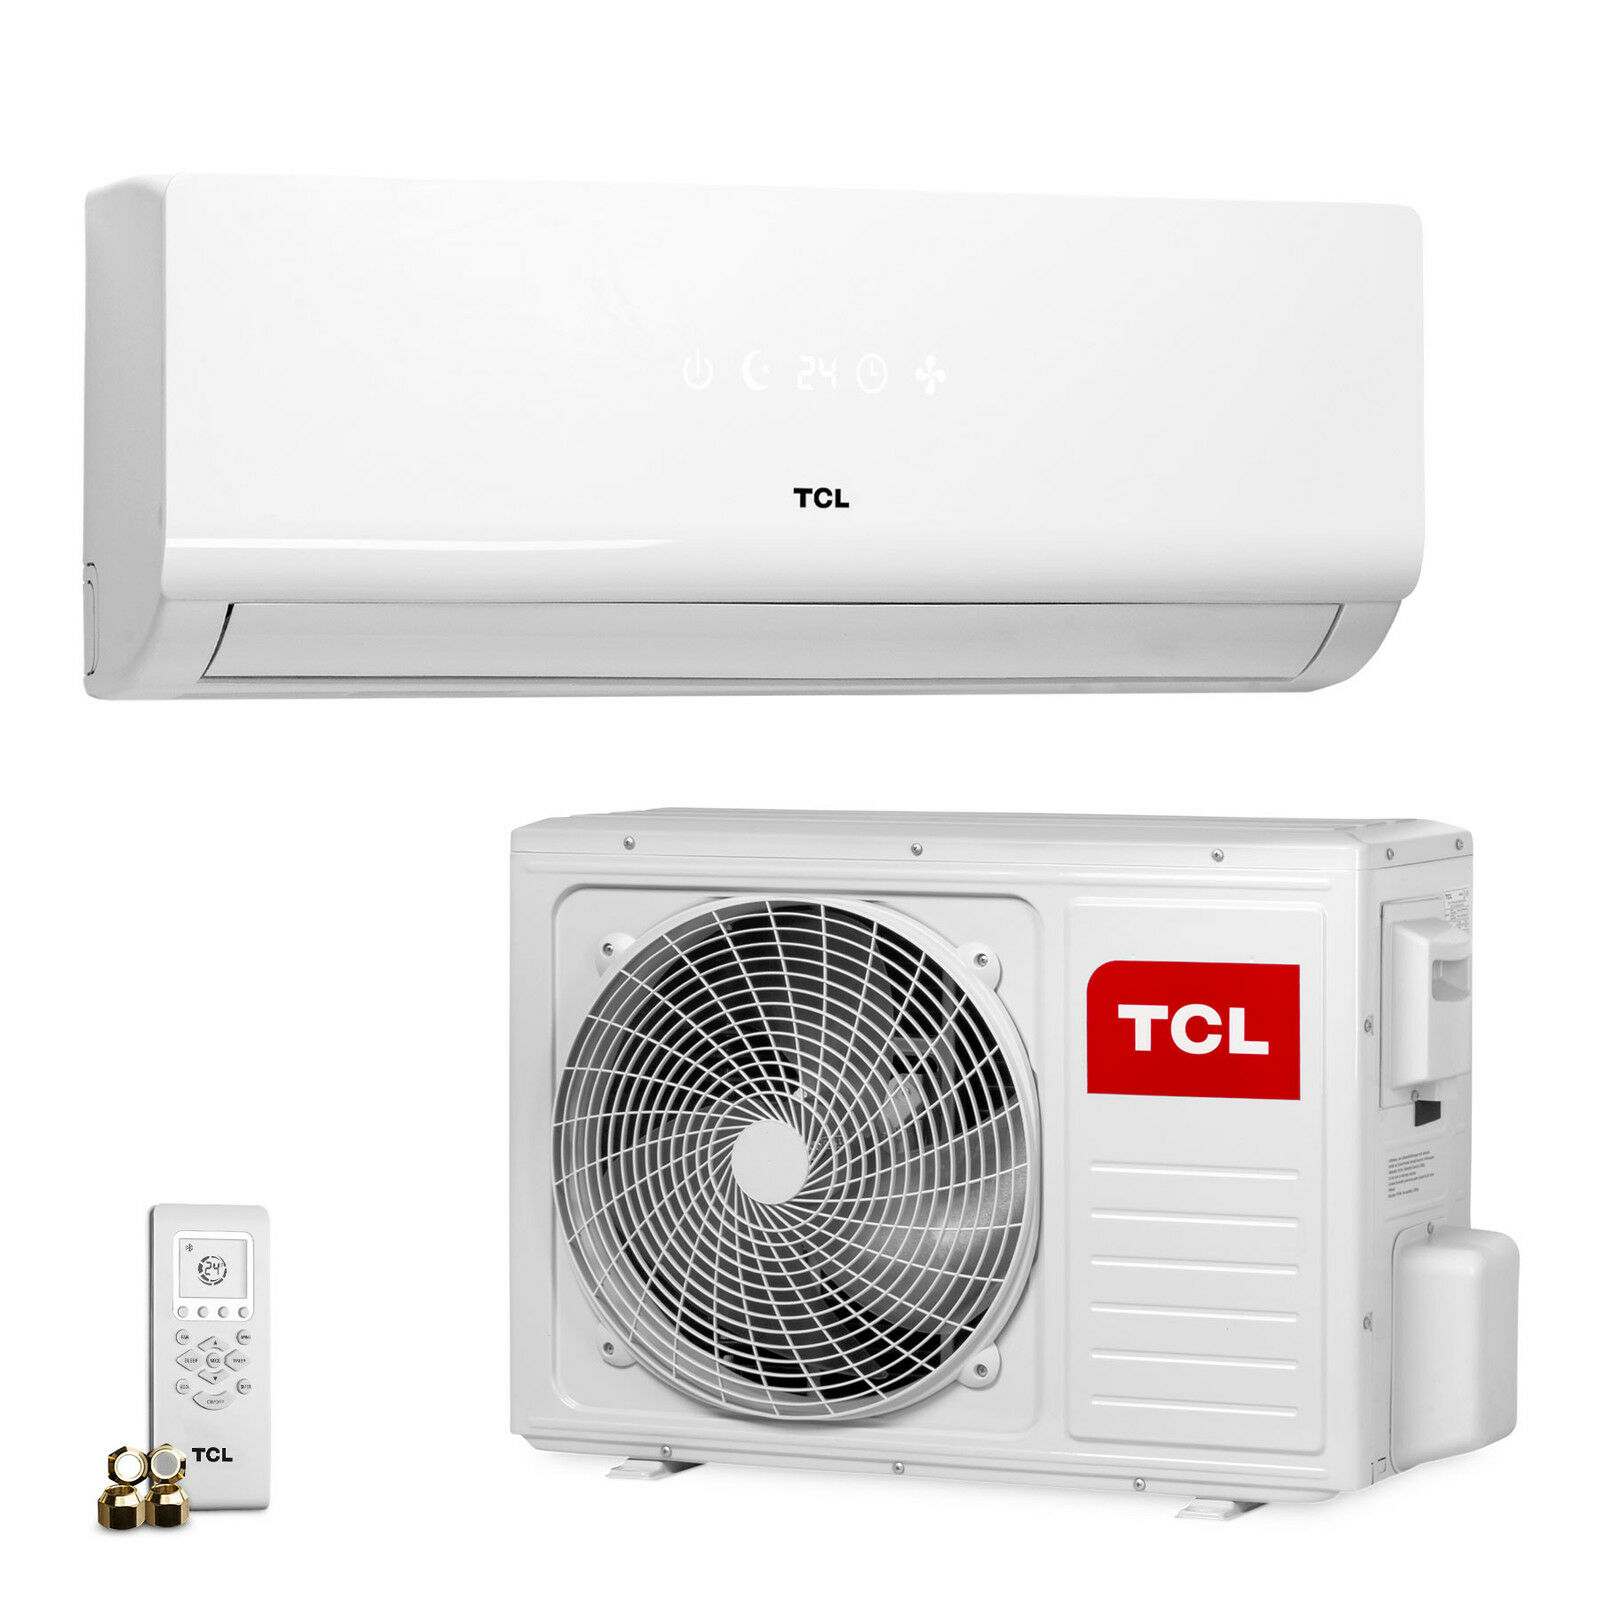 tcl klima 12000 btu split klimaanlage inverter klimager t 3 5 kw modell kc eur 449 00. Black Bedroom Furniture Sets. Home Design Ideas